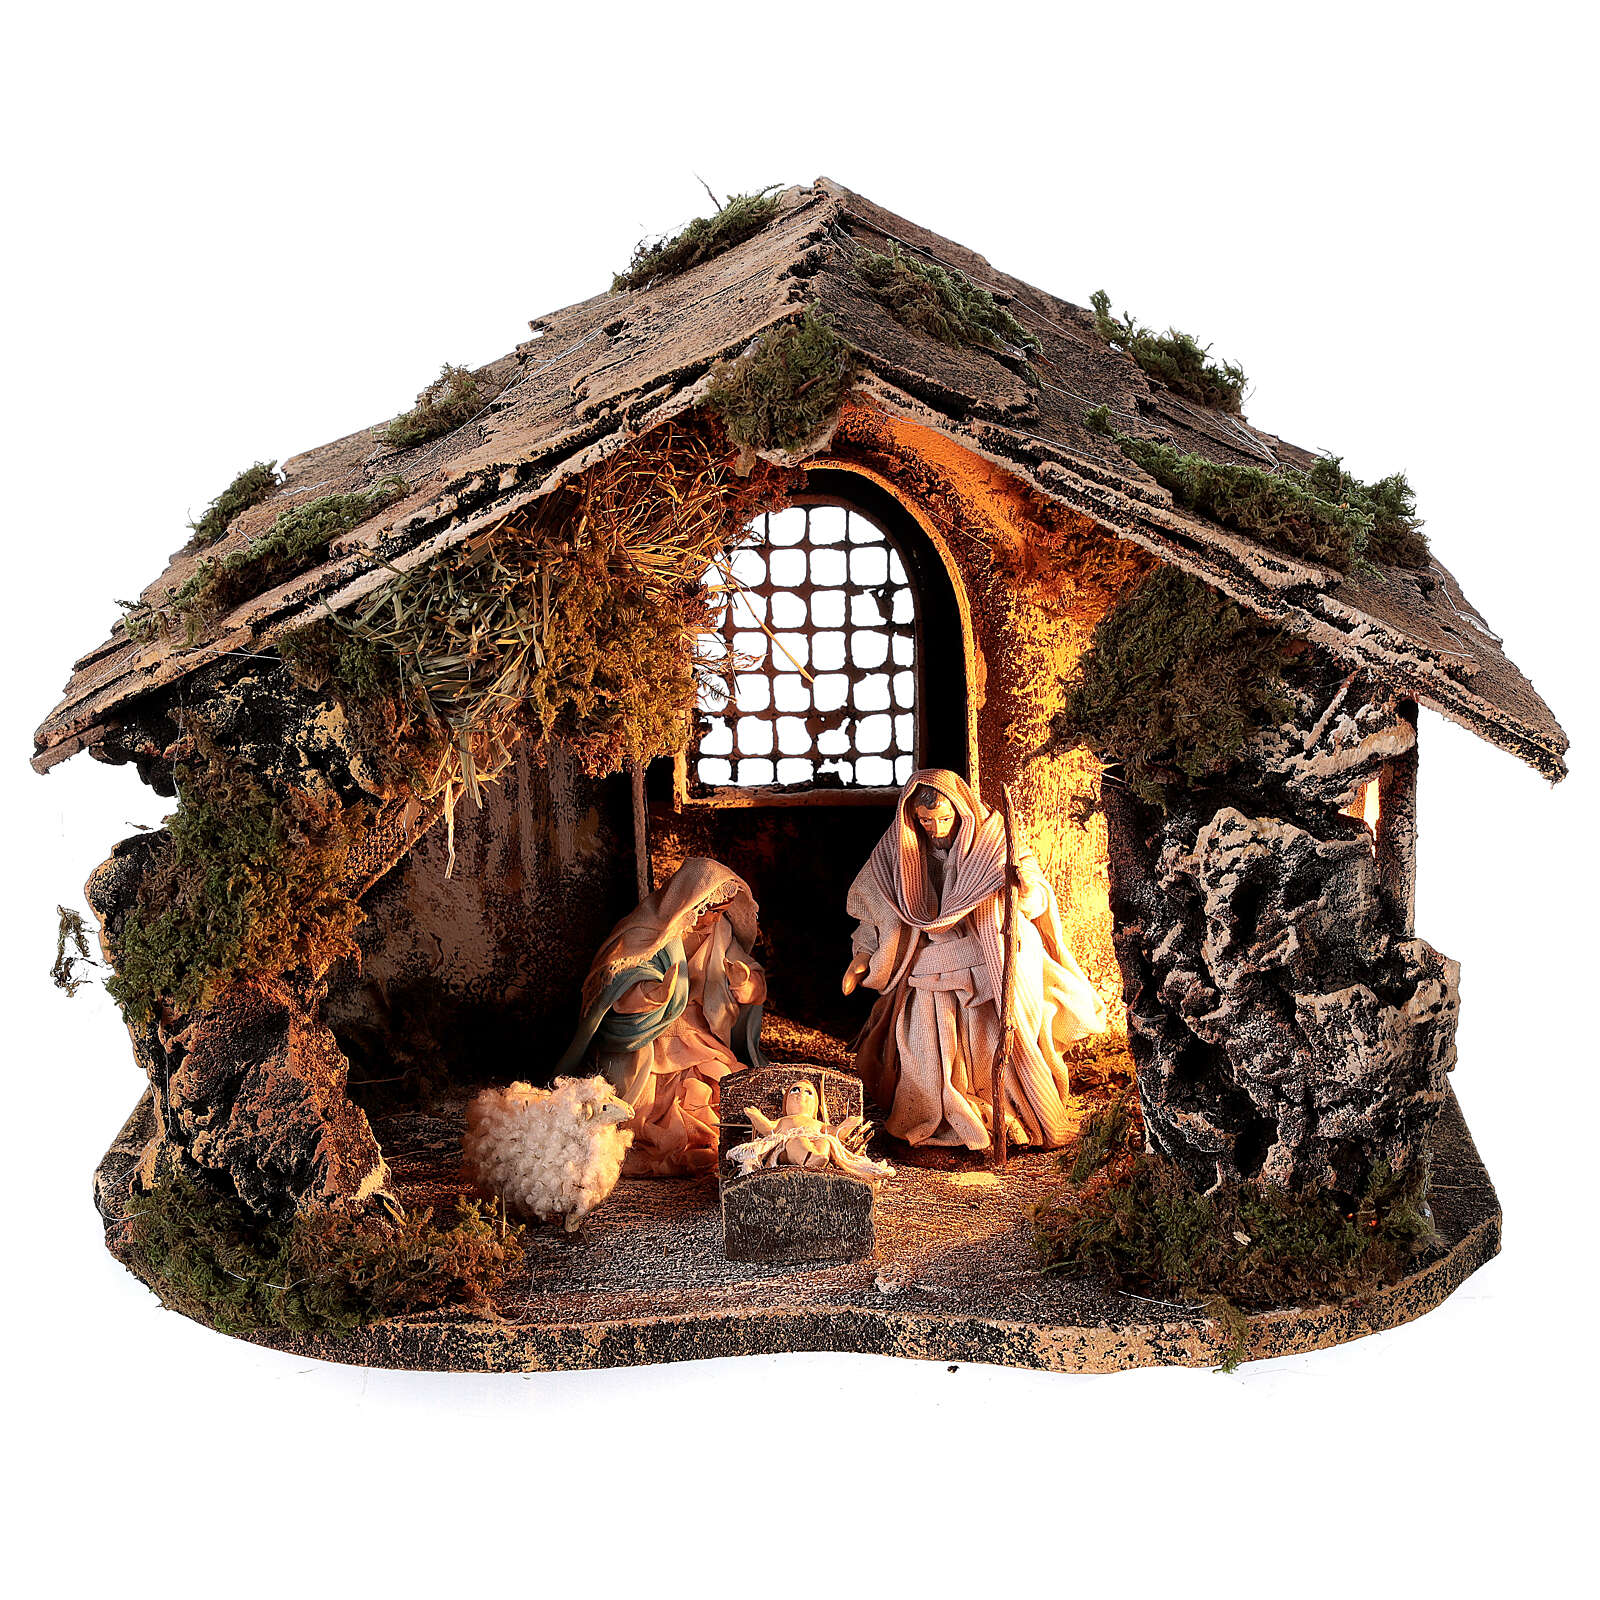 Nativity set with stable depth effect 10 cm Neapolitan nativity 25x35x20 4